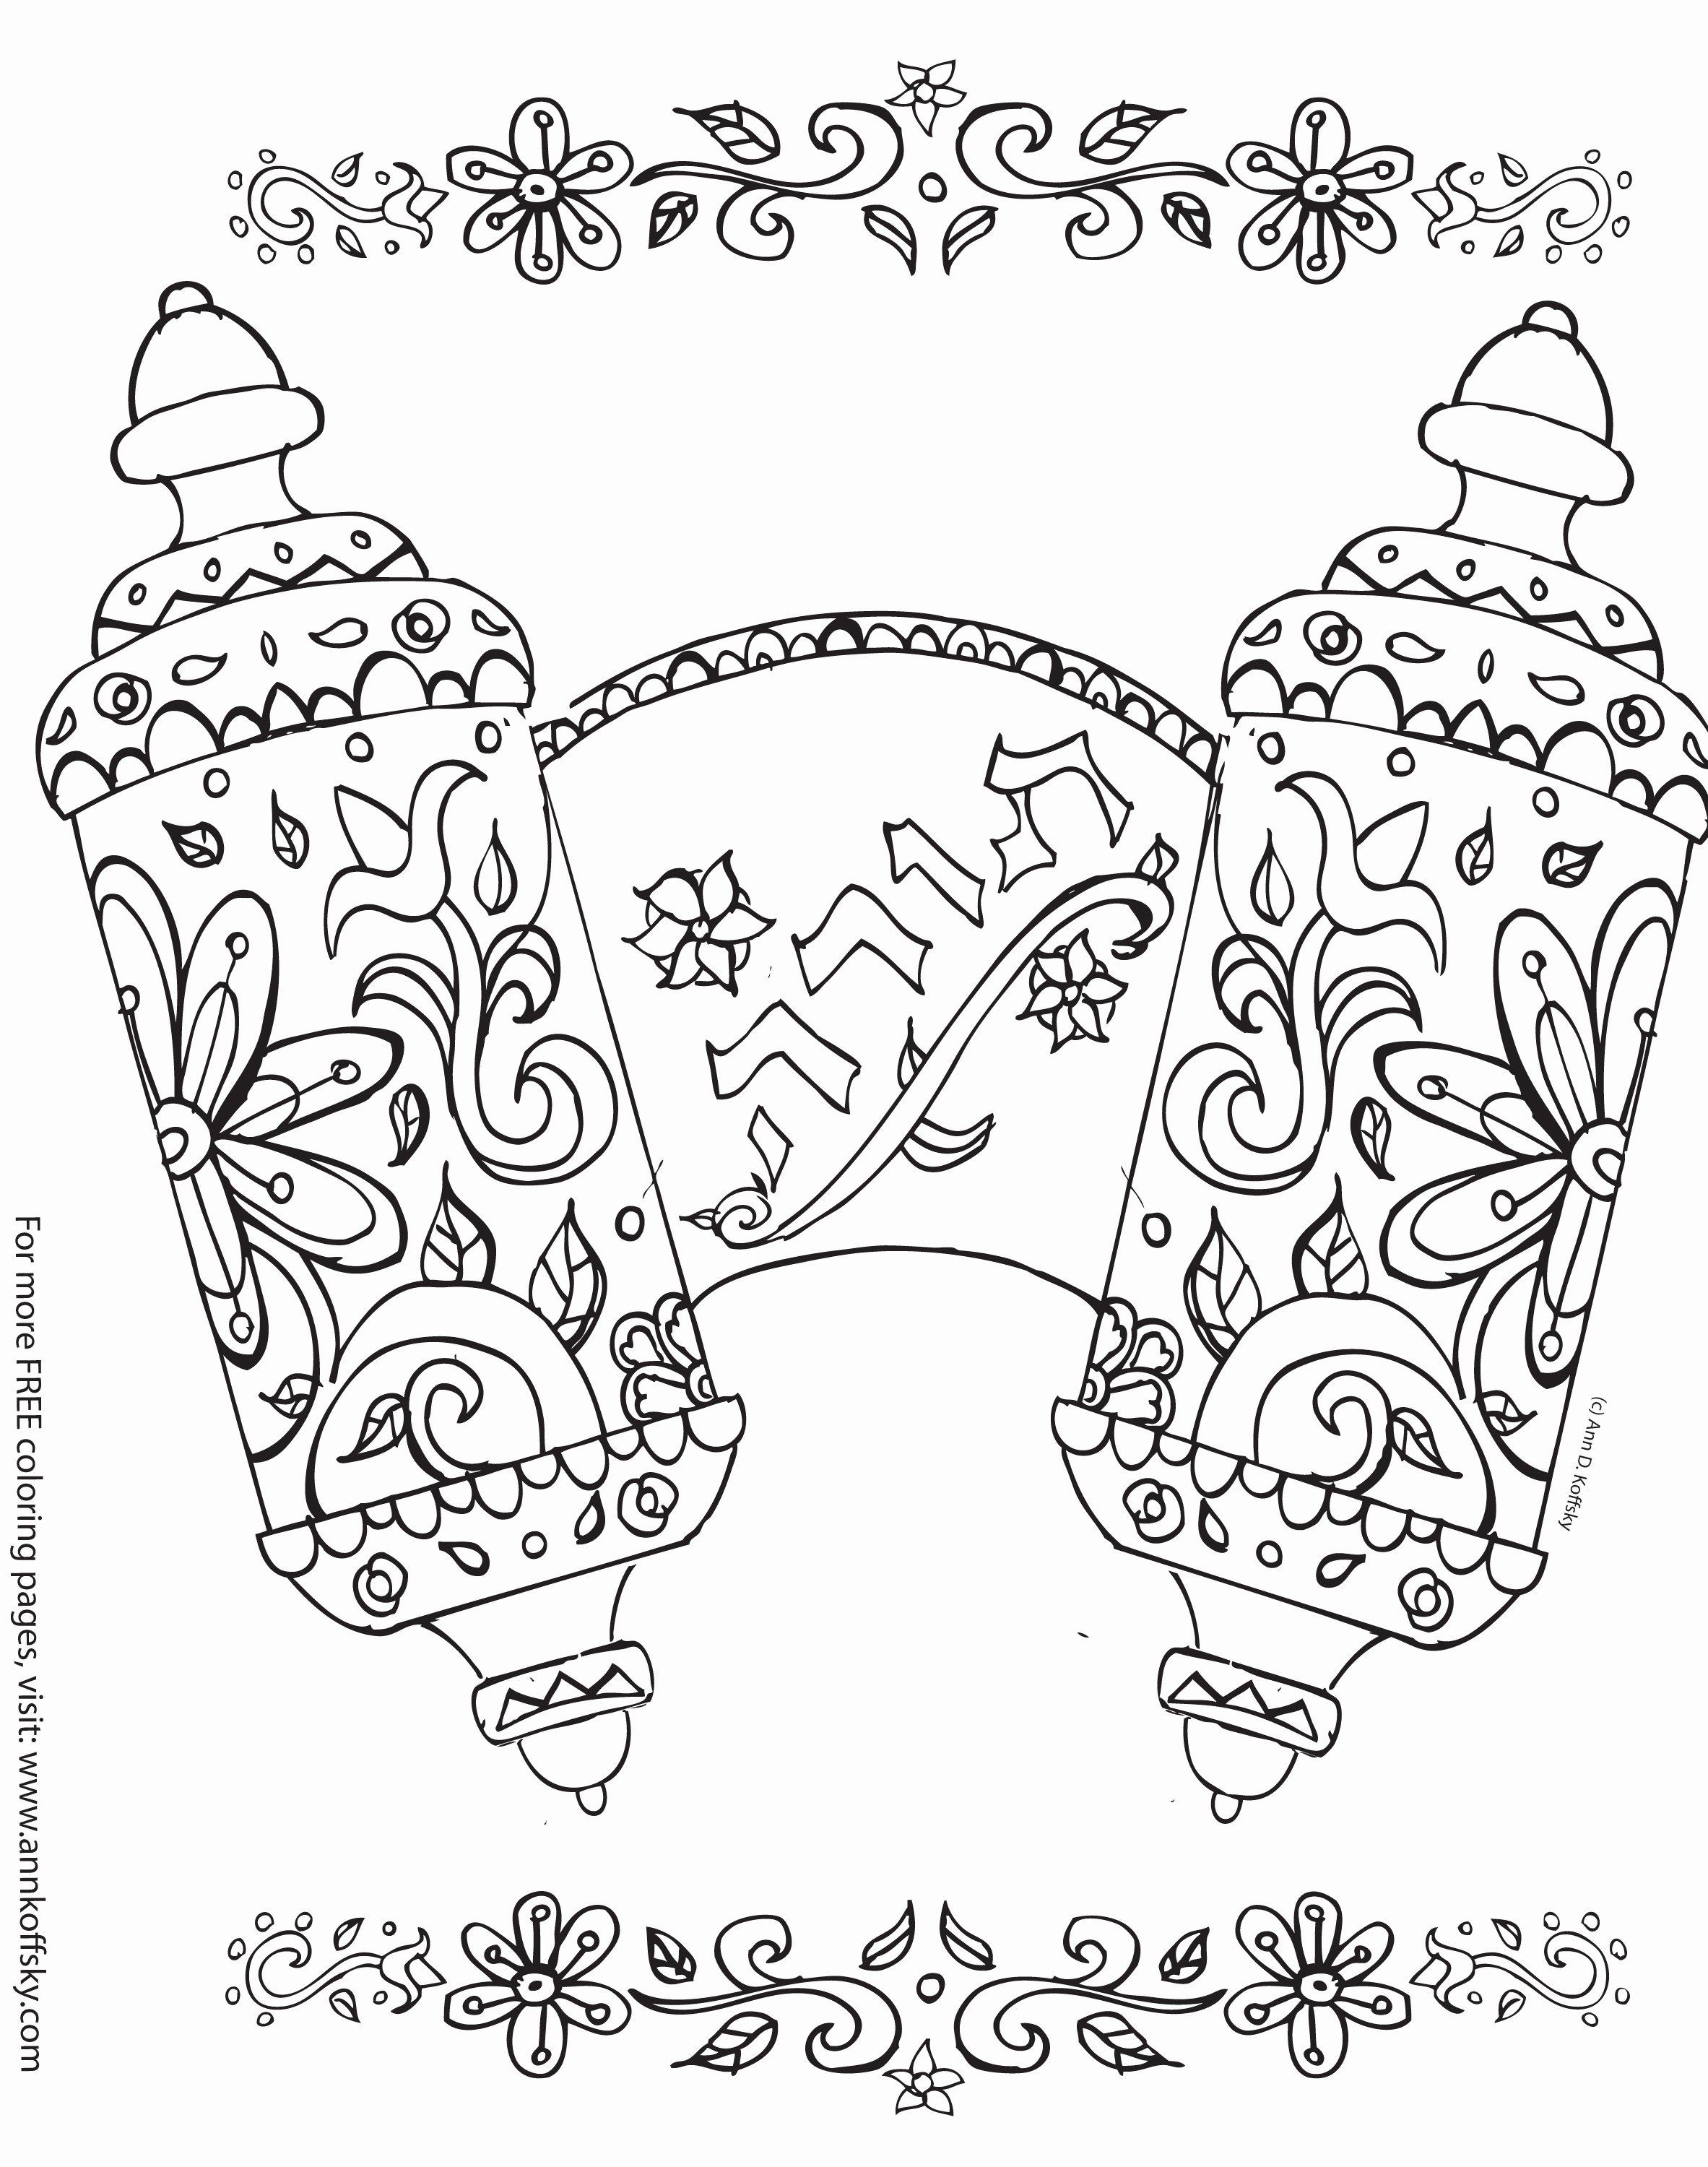 Rosh Hashanah Images Free Awesome Jewish Holiday Coloring Pages Ronniebrownlifesystems Shavuot Crafts Jewish Crafts Coloring Pages